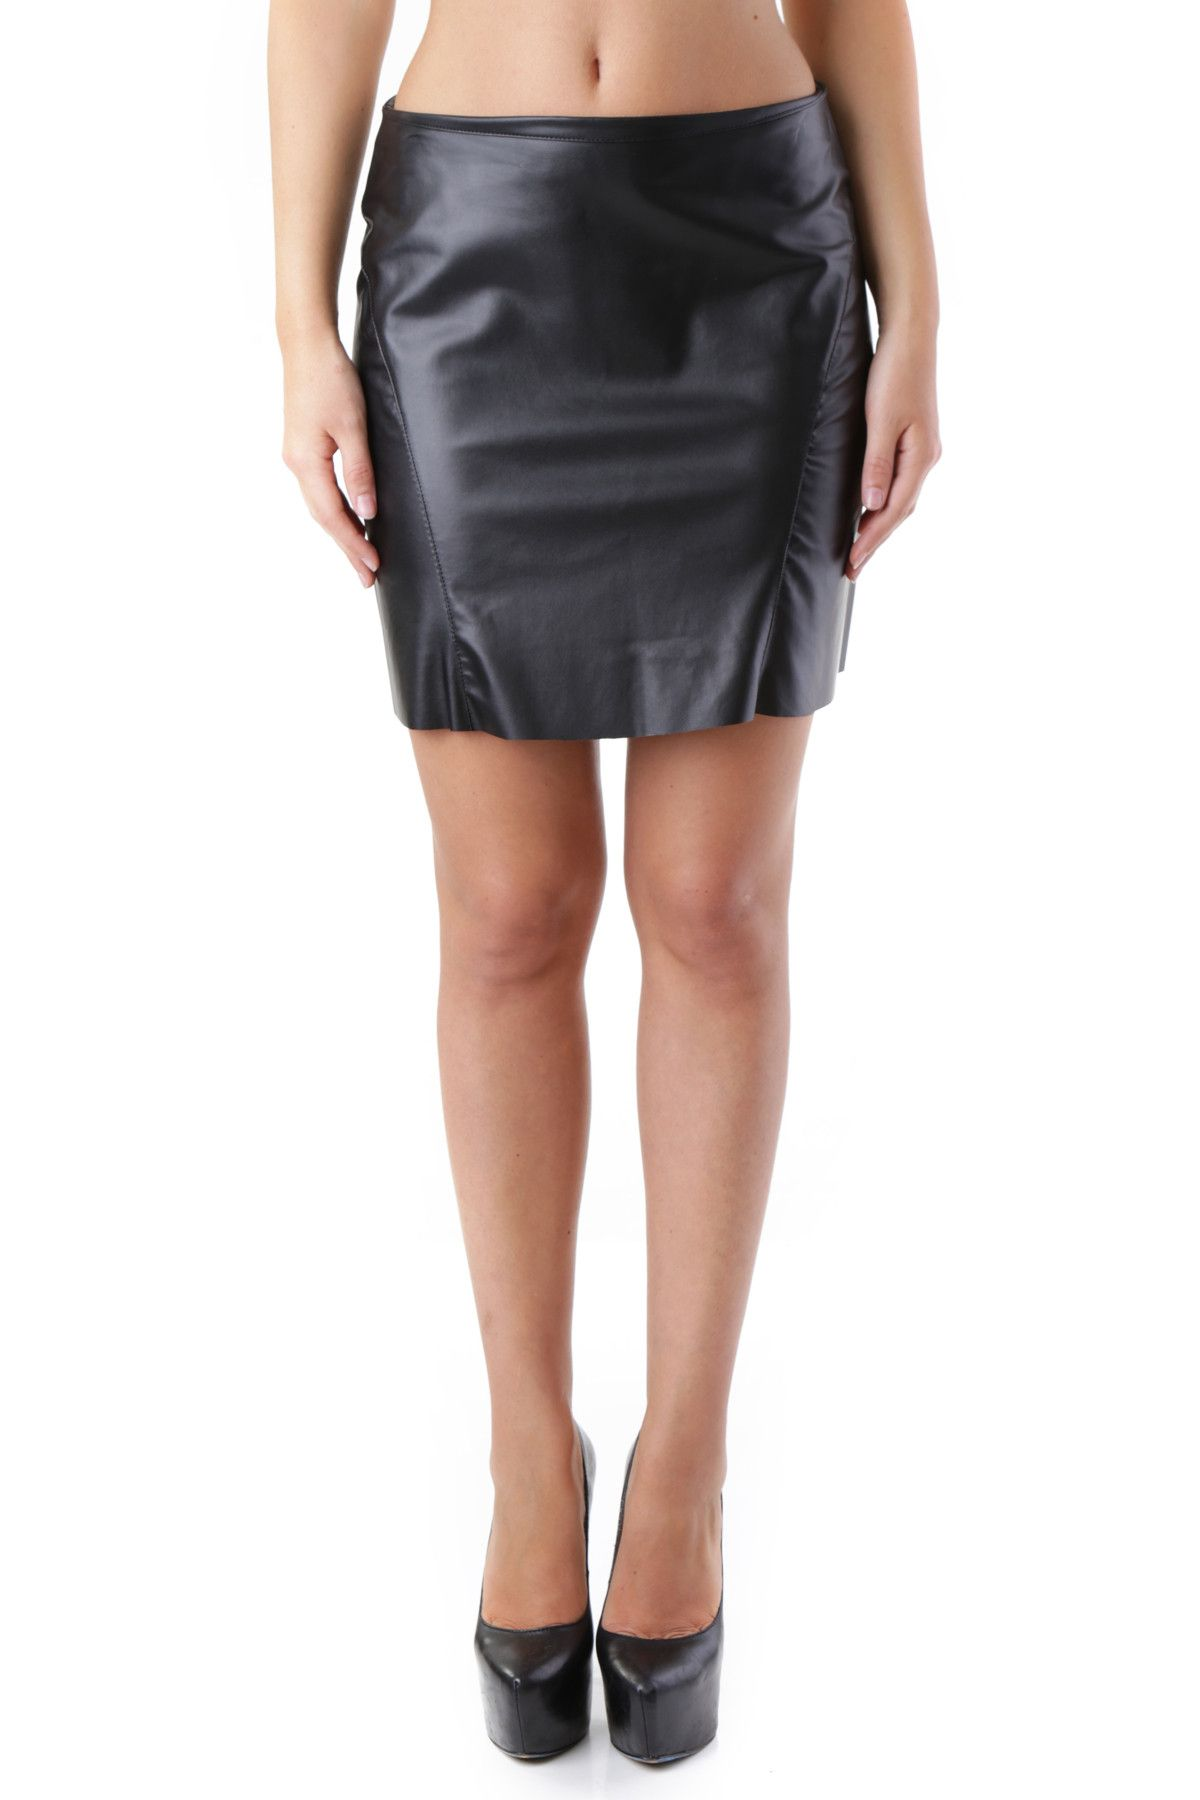 525 Women's Skirt In Black